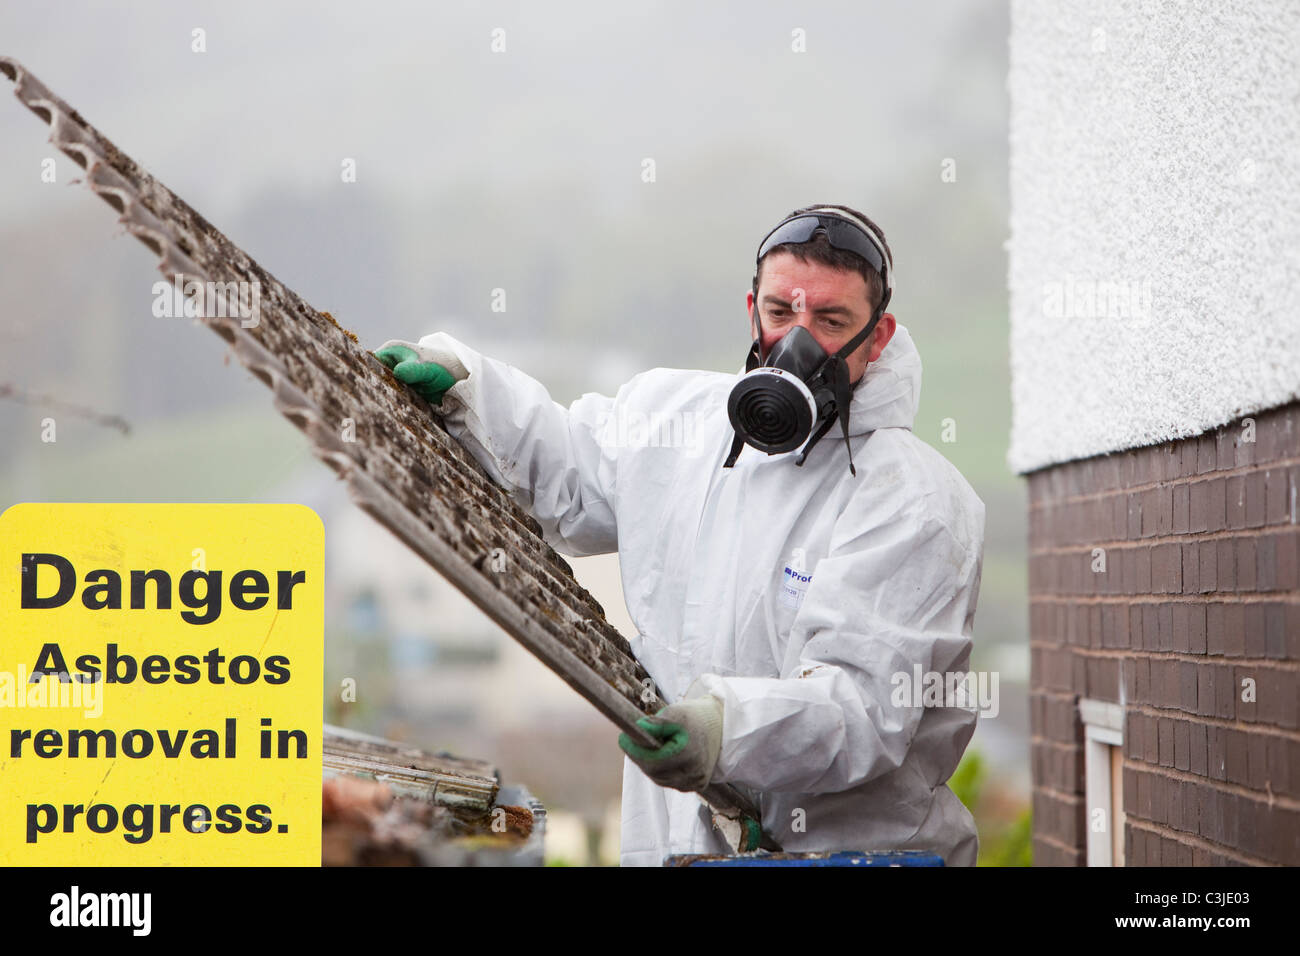 A specialist asbestos removal company removing asbestos from a shed roof of a house in Ambleside, Cumbria, UK. - Stock Image